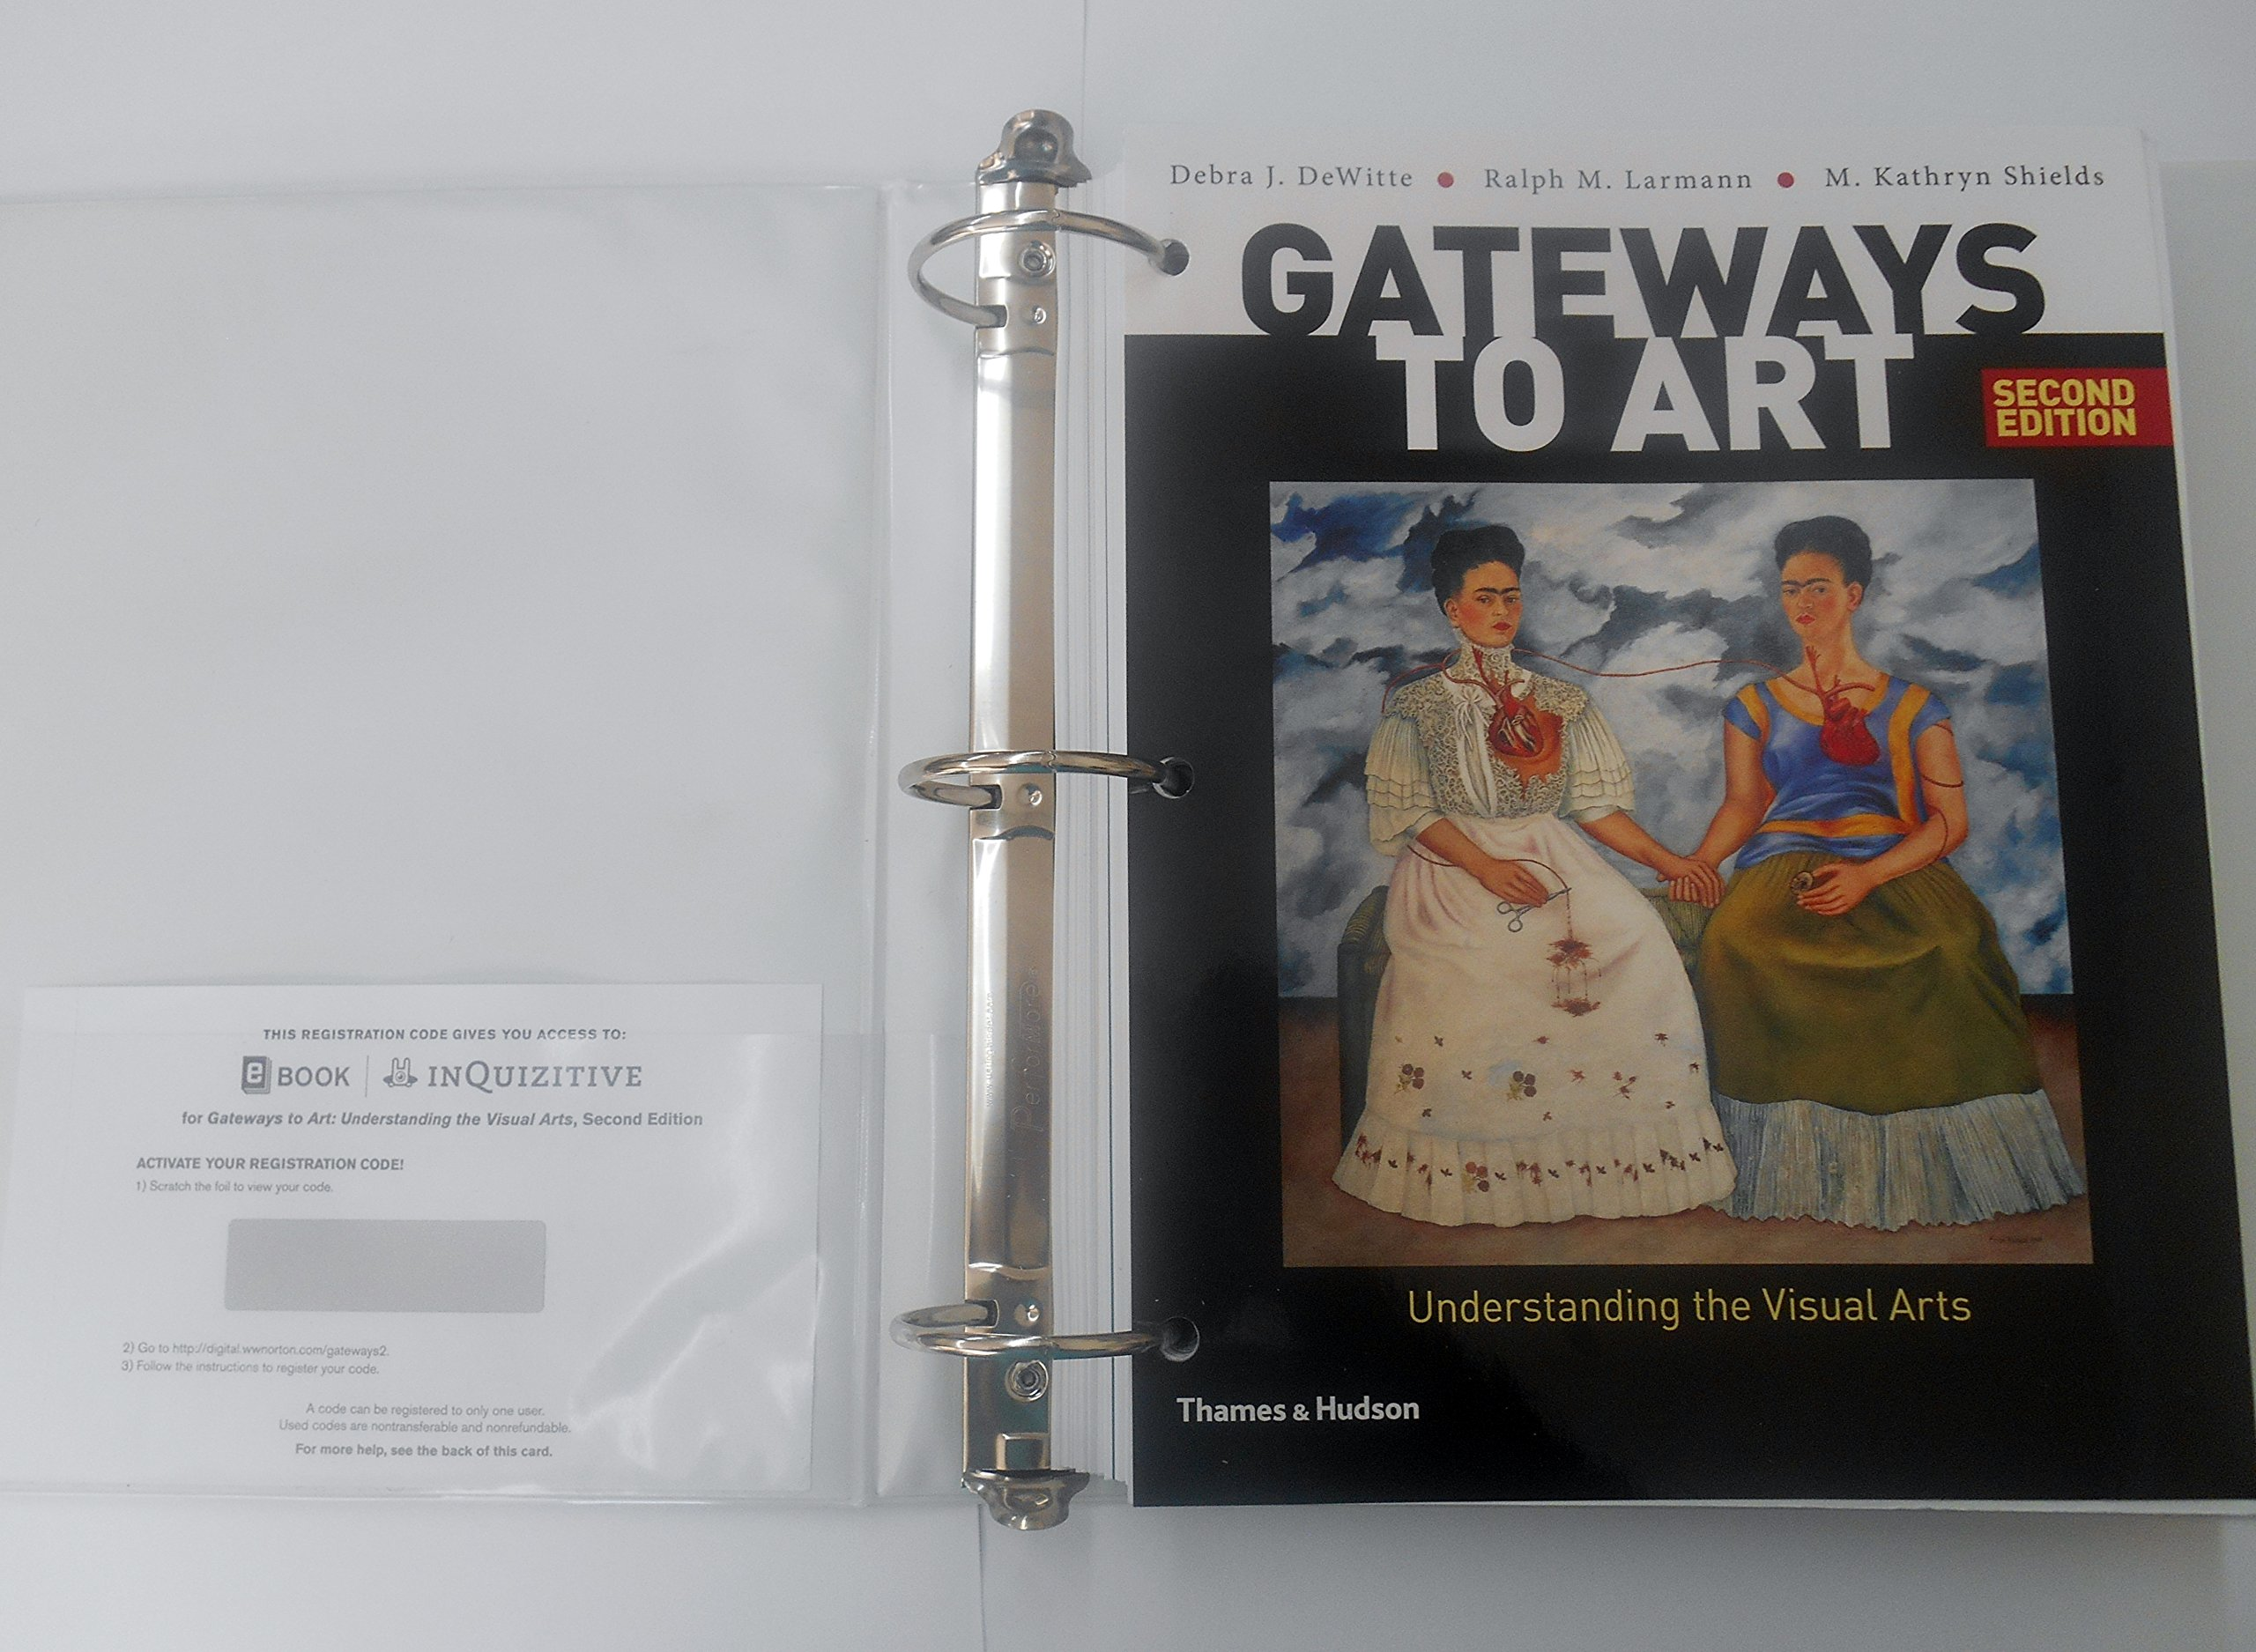 Gateways to art understanding the visual arts debra j dewitte gateways to art understanding the visual arts debra j dewitte ralph m larmann m kathryn shields 9780500840481 amazon books fandeluxe Image collections